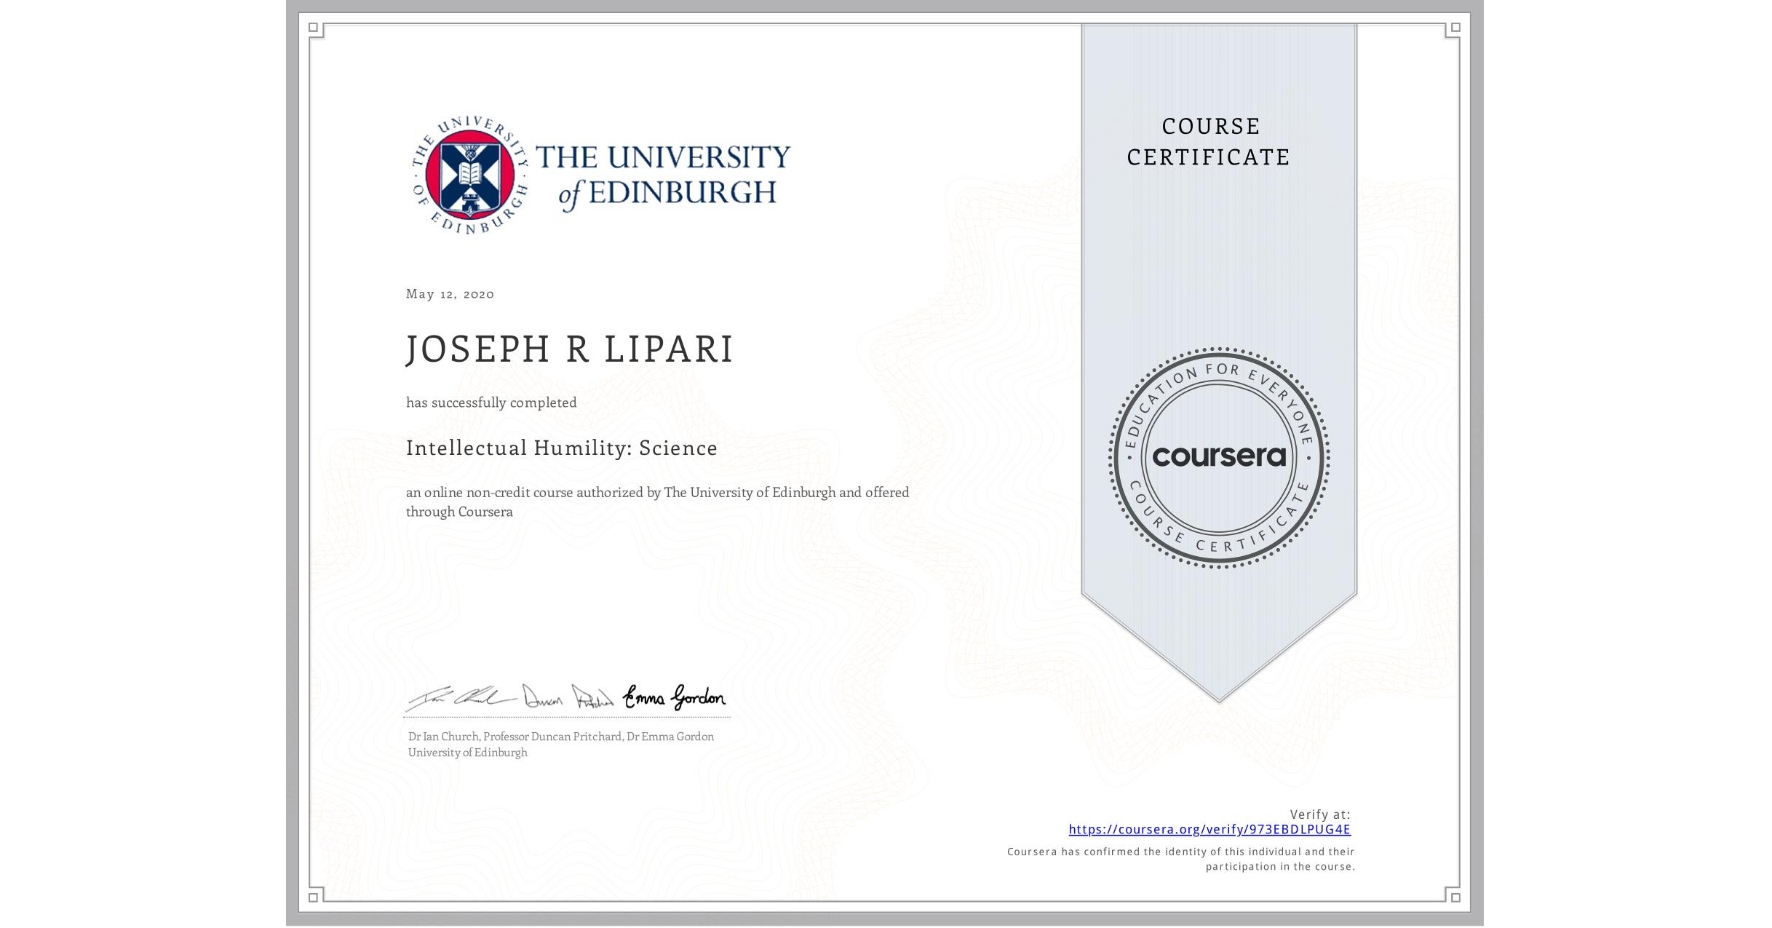 View certificate for JOSEPH R  LIPARI, Intellectual Humility: Science, an online non-credit course authorized by The University of Edinburgh and offered through Coursera